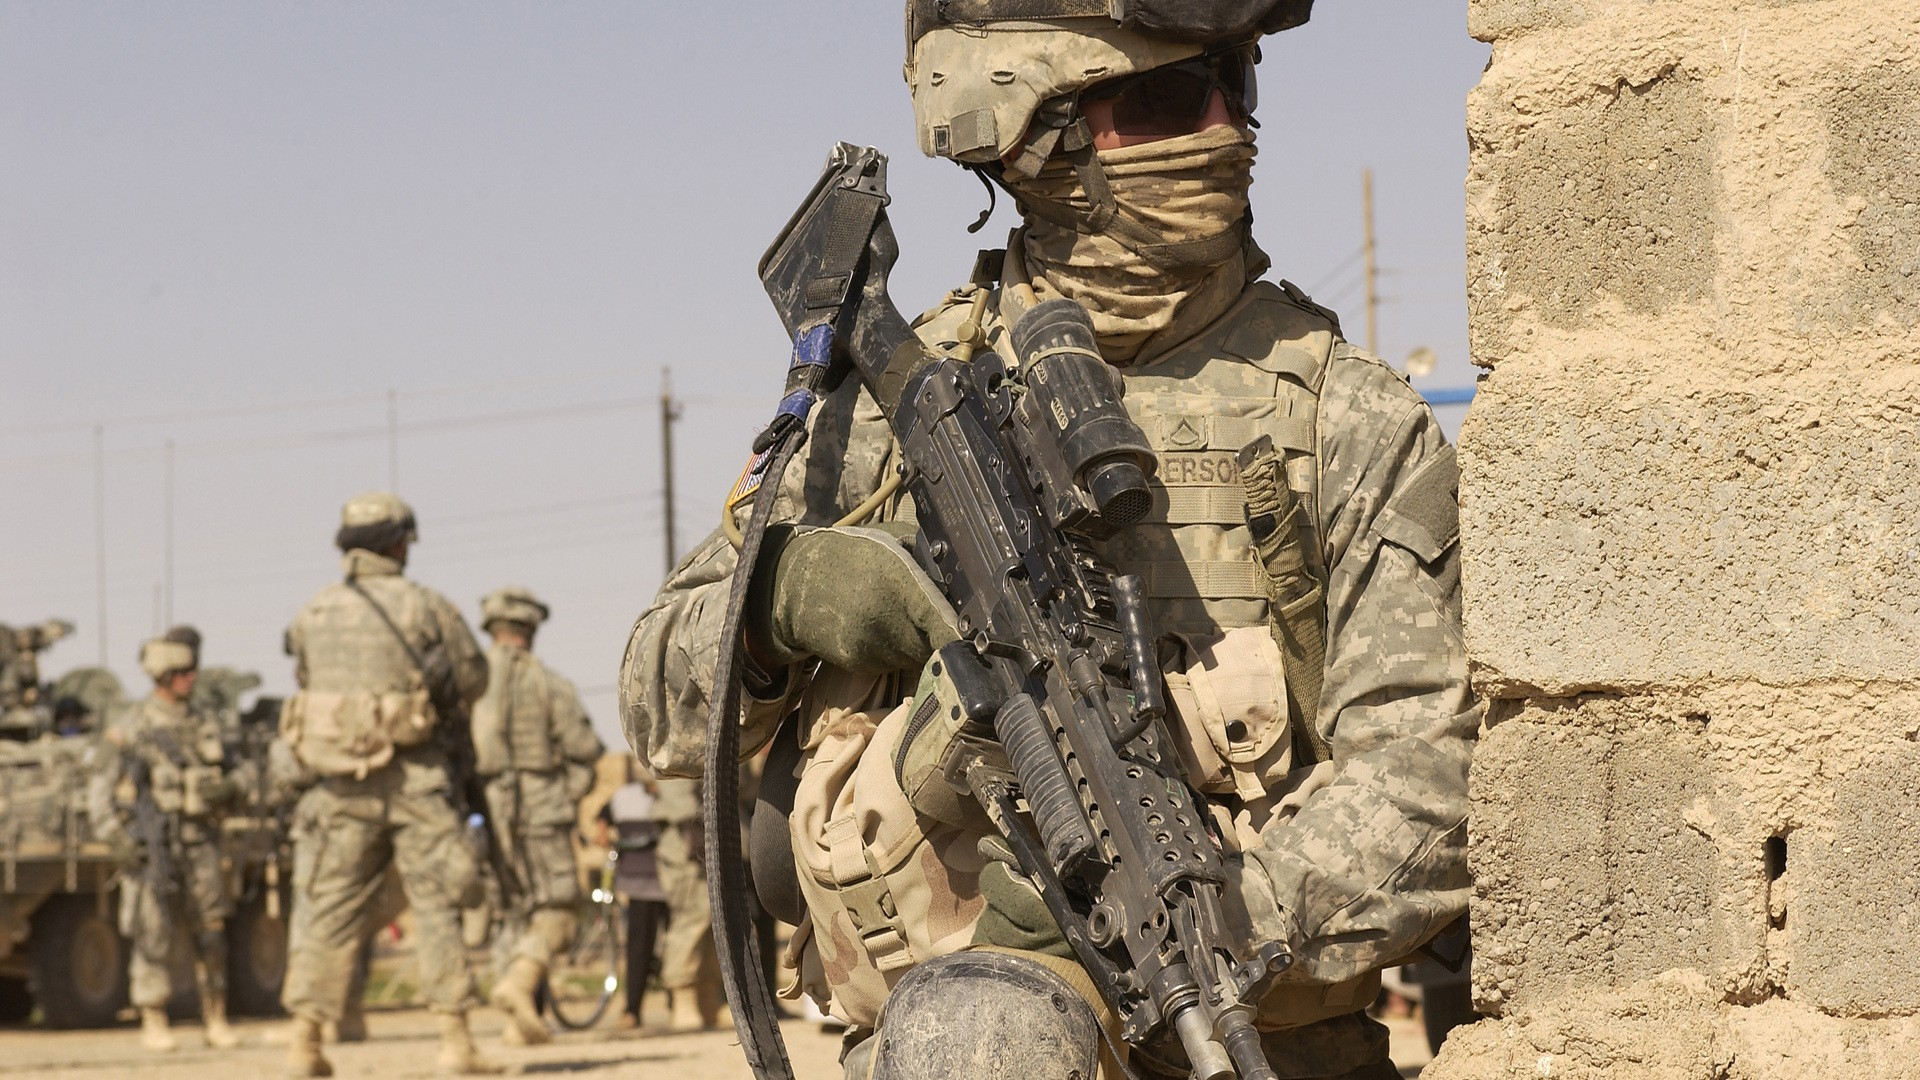 soldiers guns military Afghanistan US Army wars wallpaper background